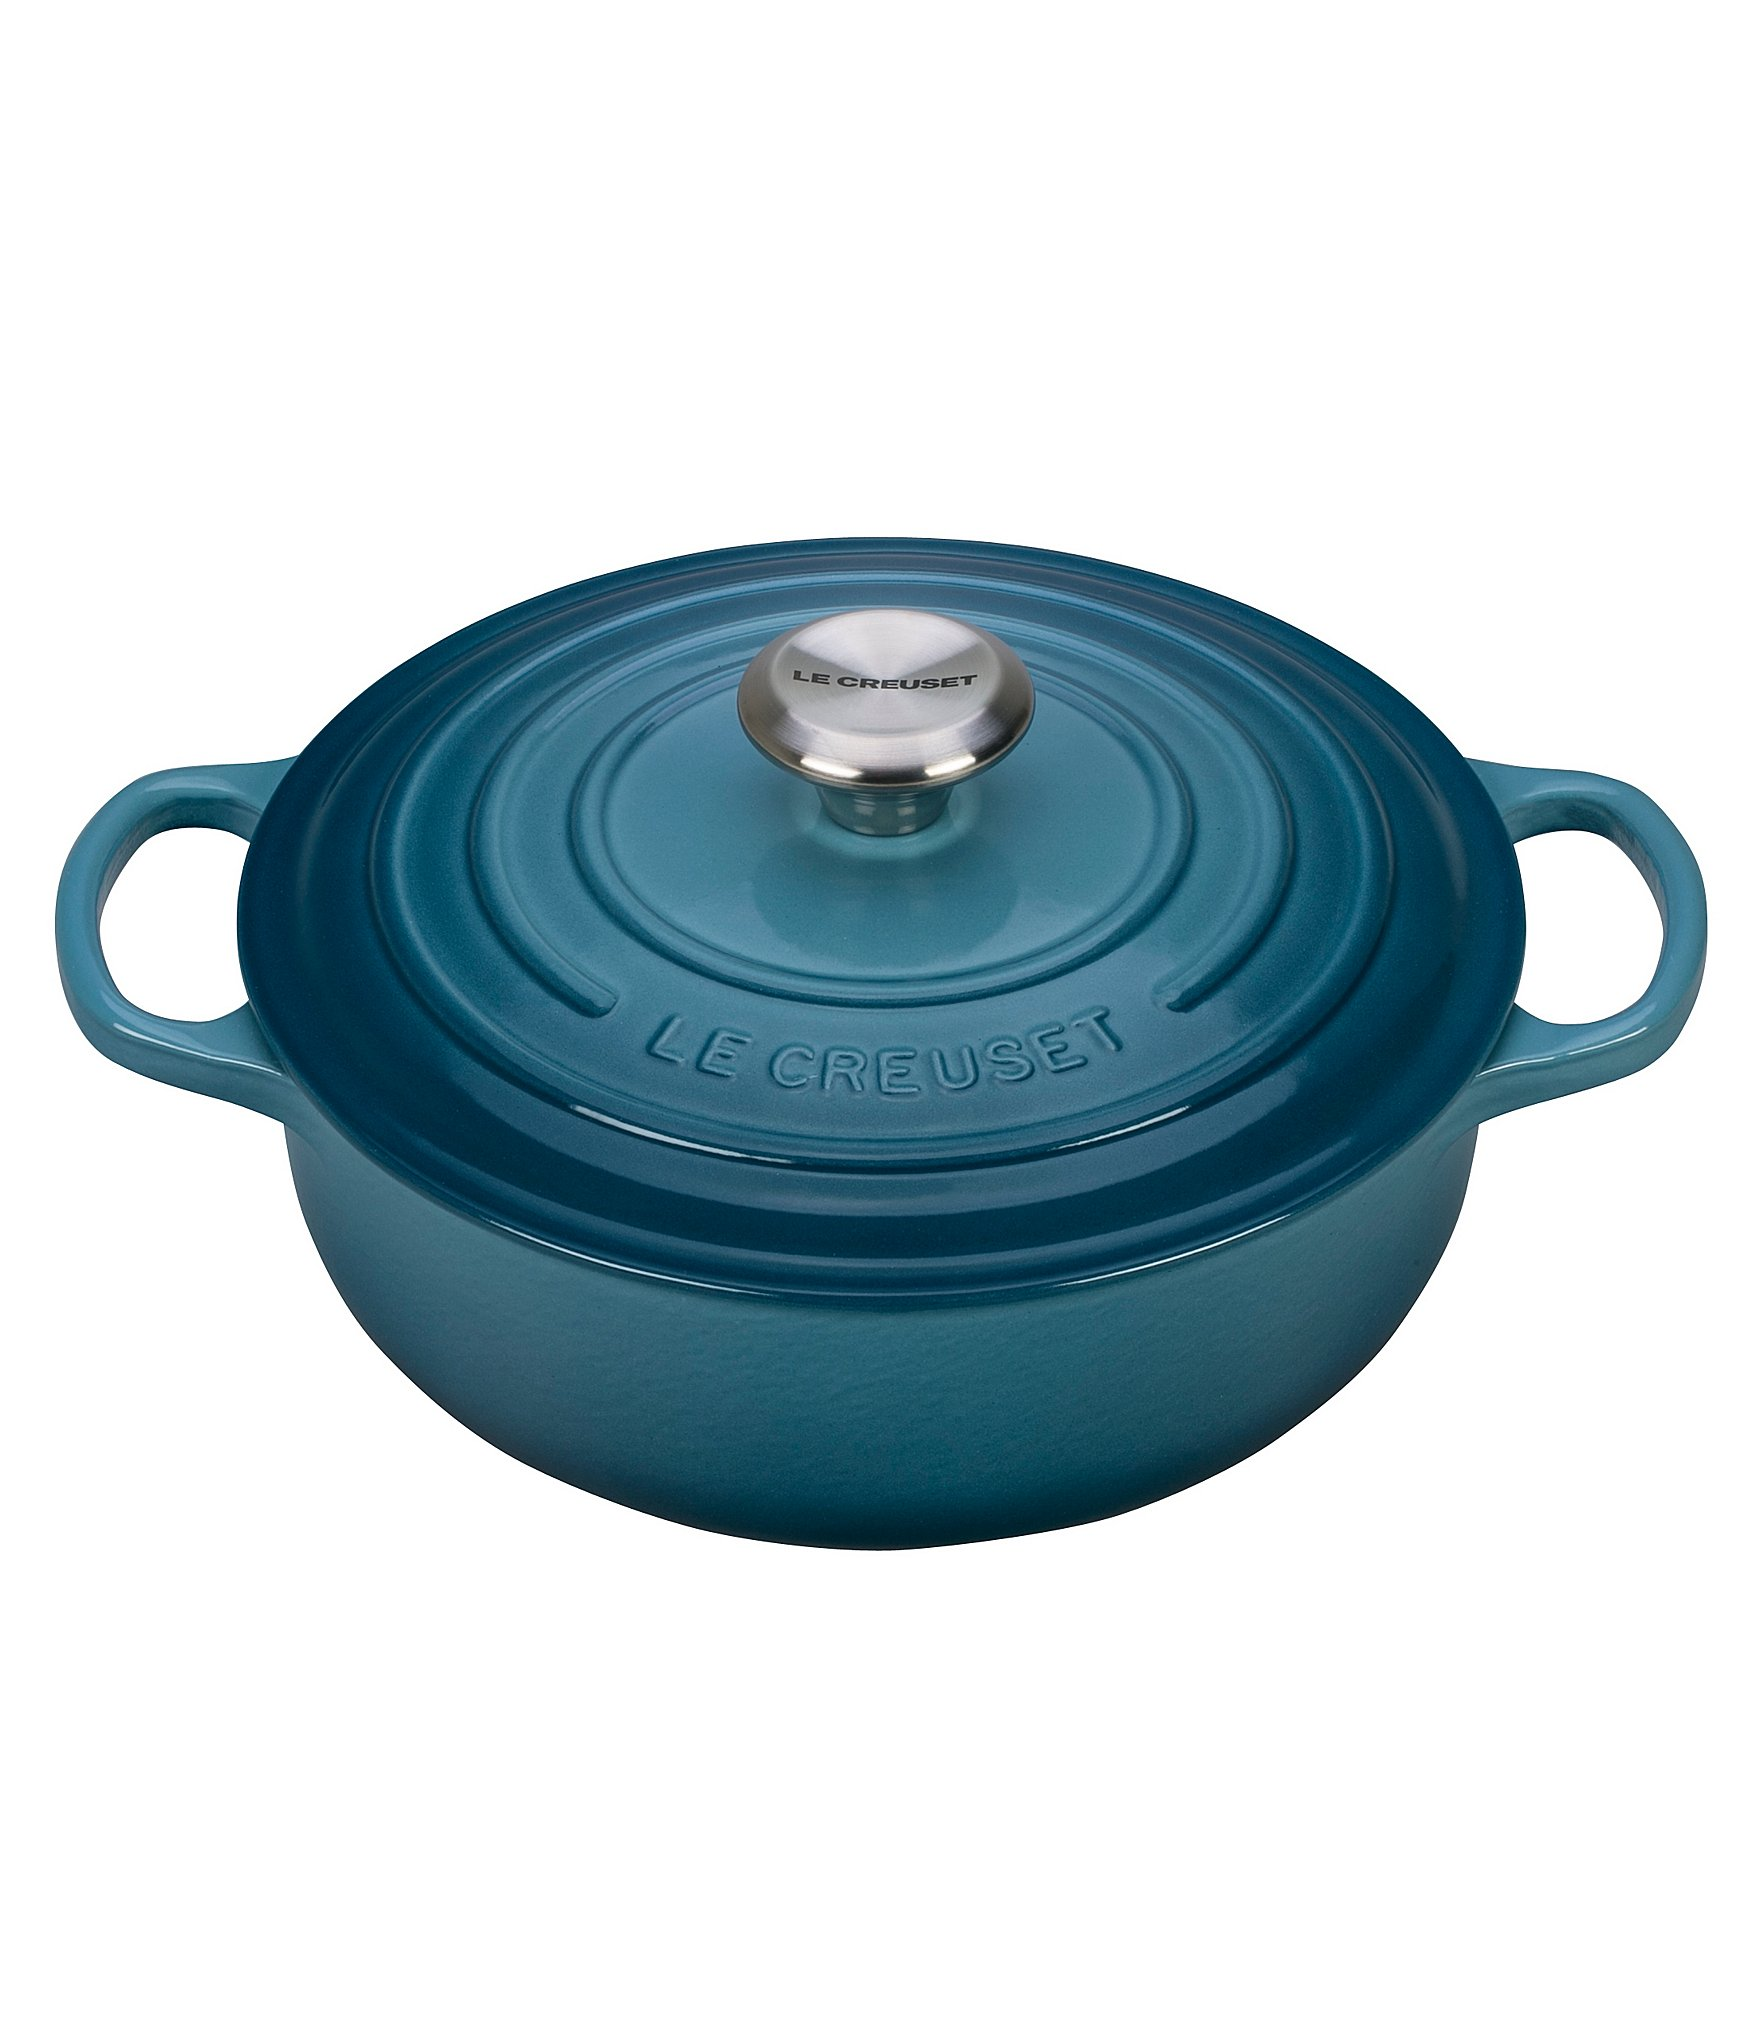 le creuset signature enamel cast iron round wide dutch oven dillards. Black Bedroom Furniture Sets. Home Design Ideas